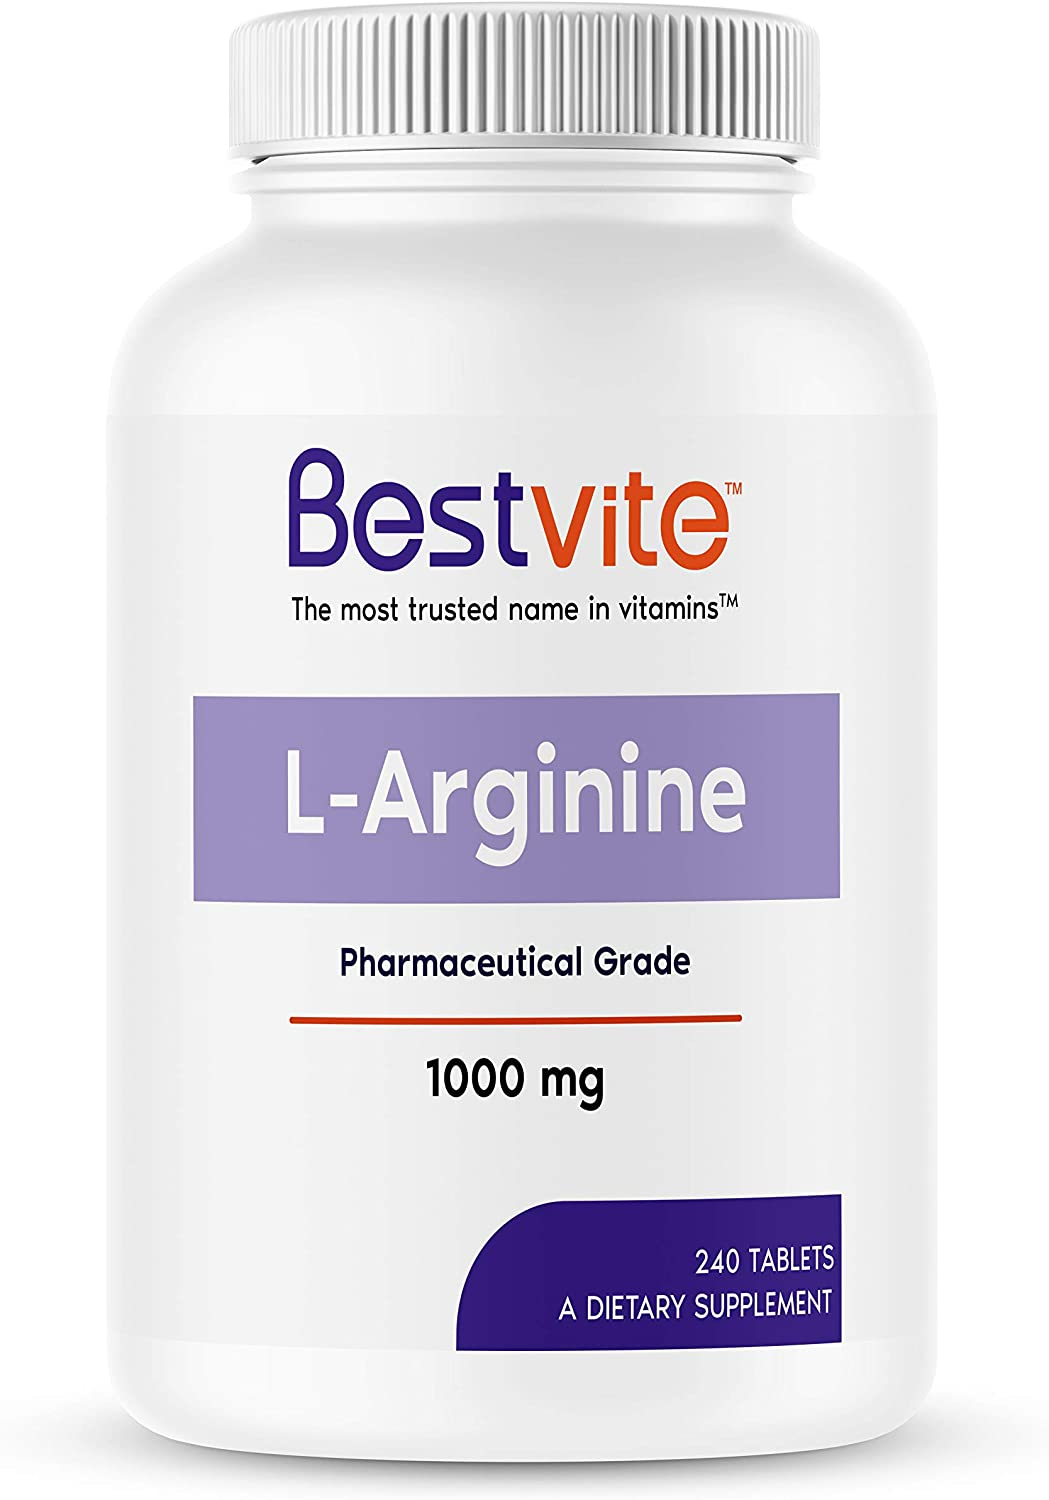 L-Arginine 1000mg (240 Tablets) containing 20% More Pure L-Arginine as Compared to L-Arginine HCL Products